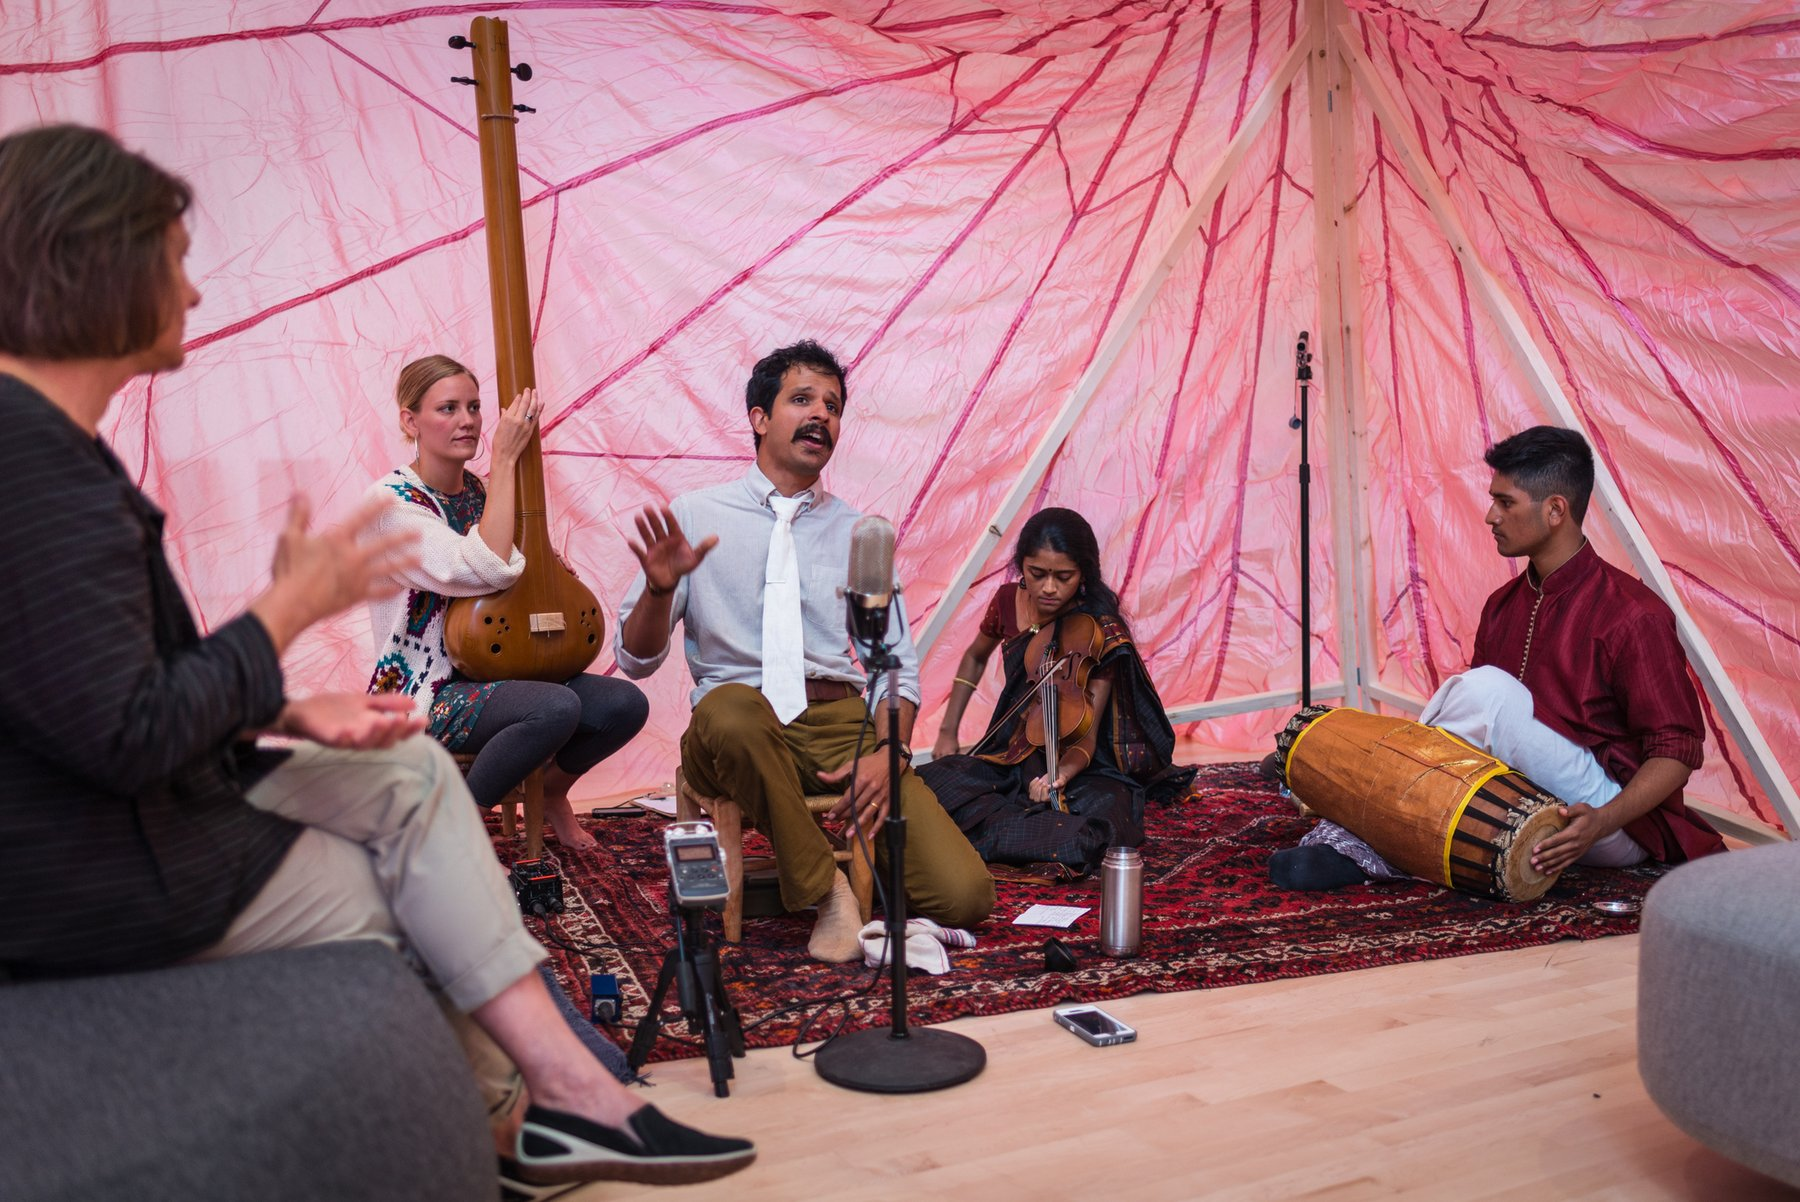 Musicians seated on a carpet with a pink fabric backdrop playing sitar, percussion and singing